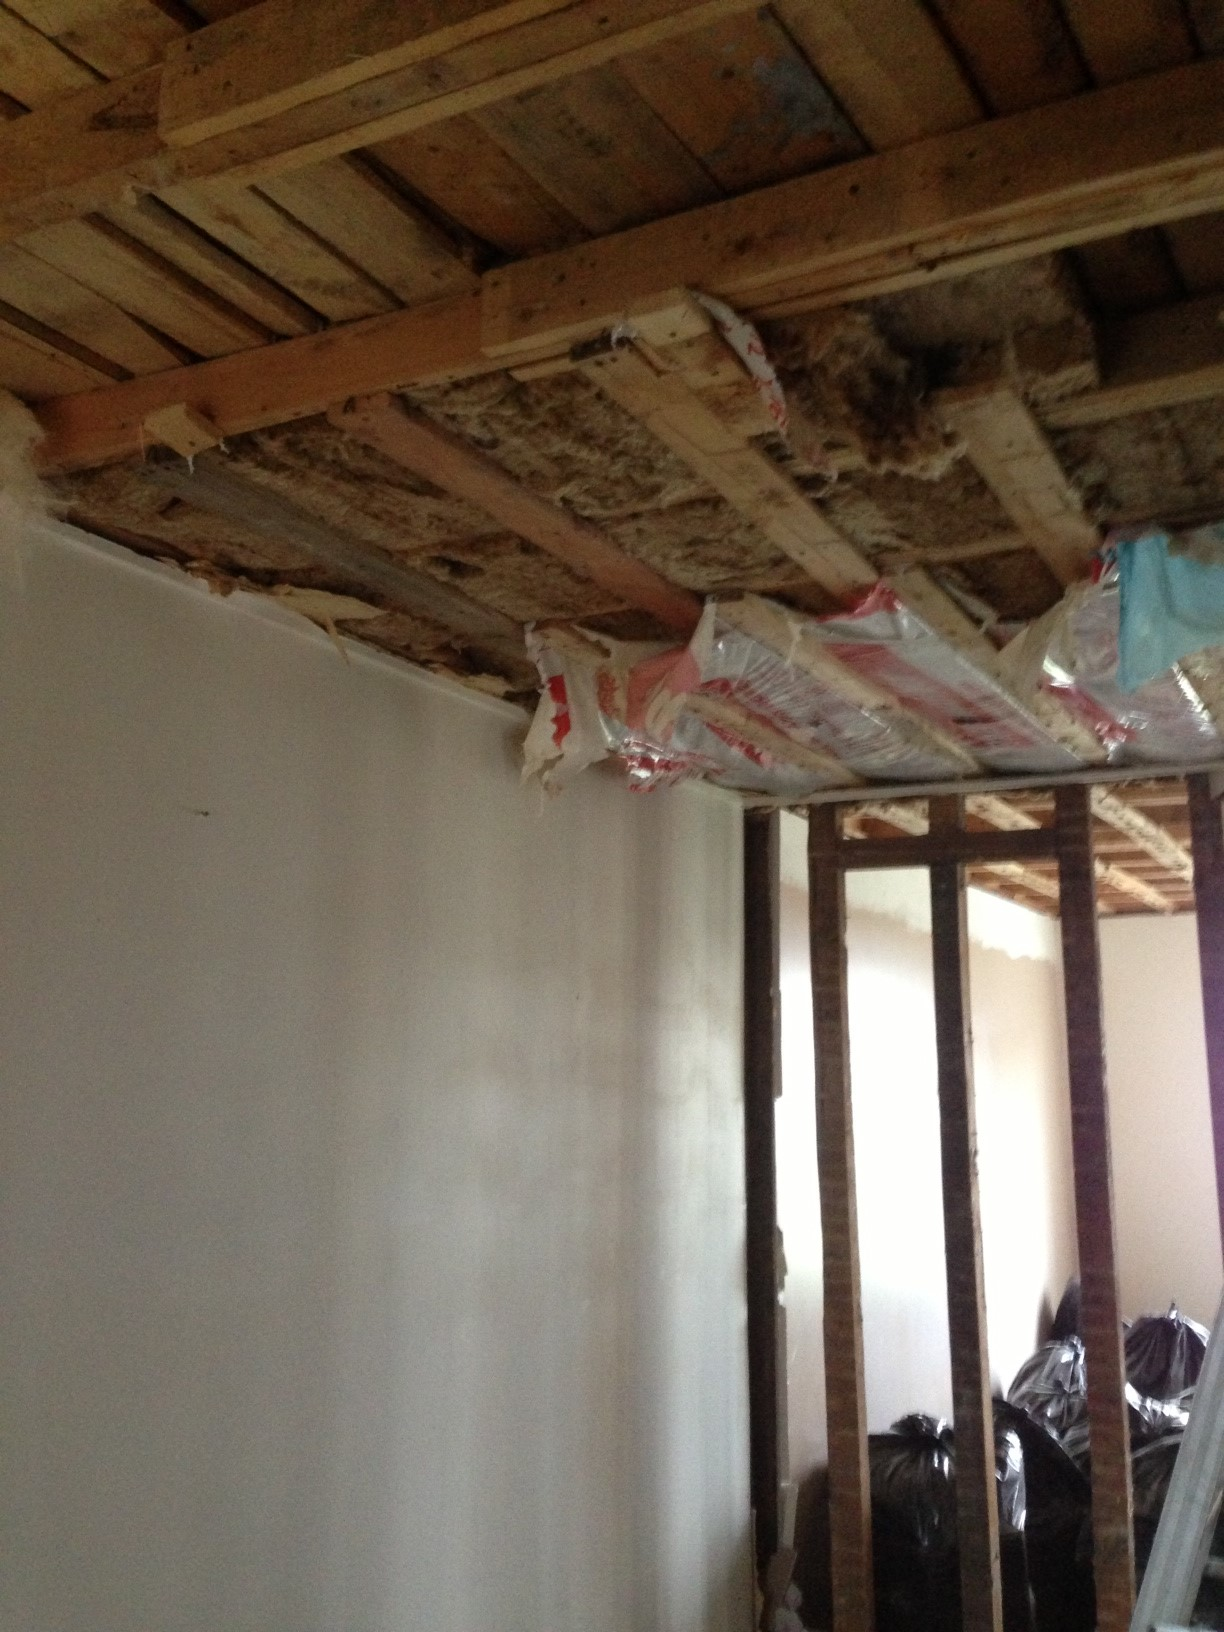 First layer of insulation down.....But wait, there's more to come!